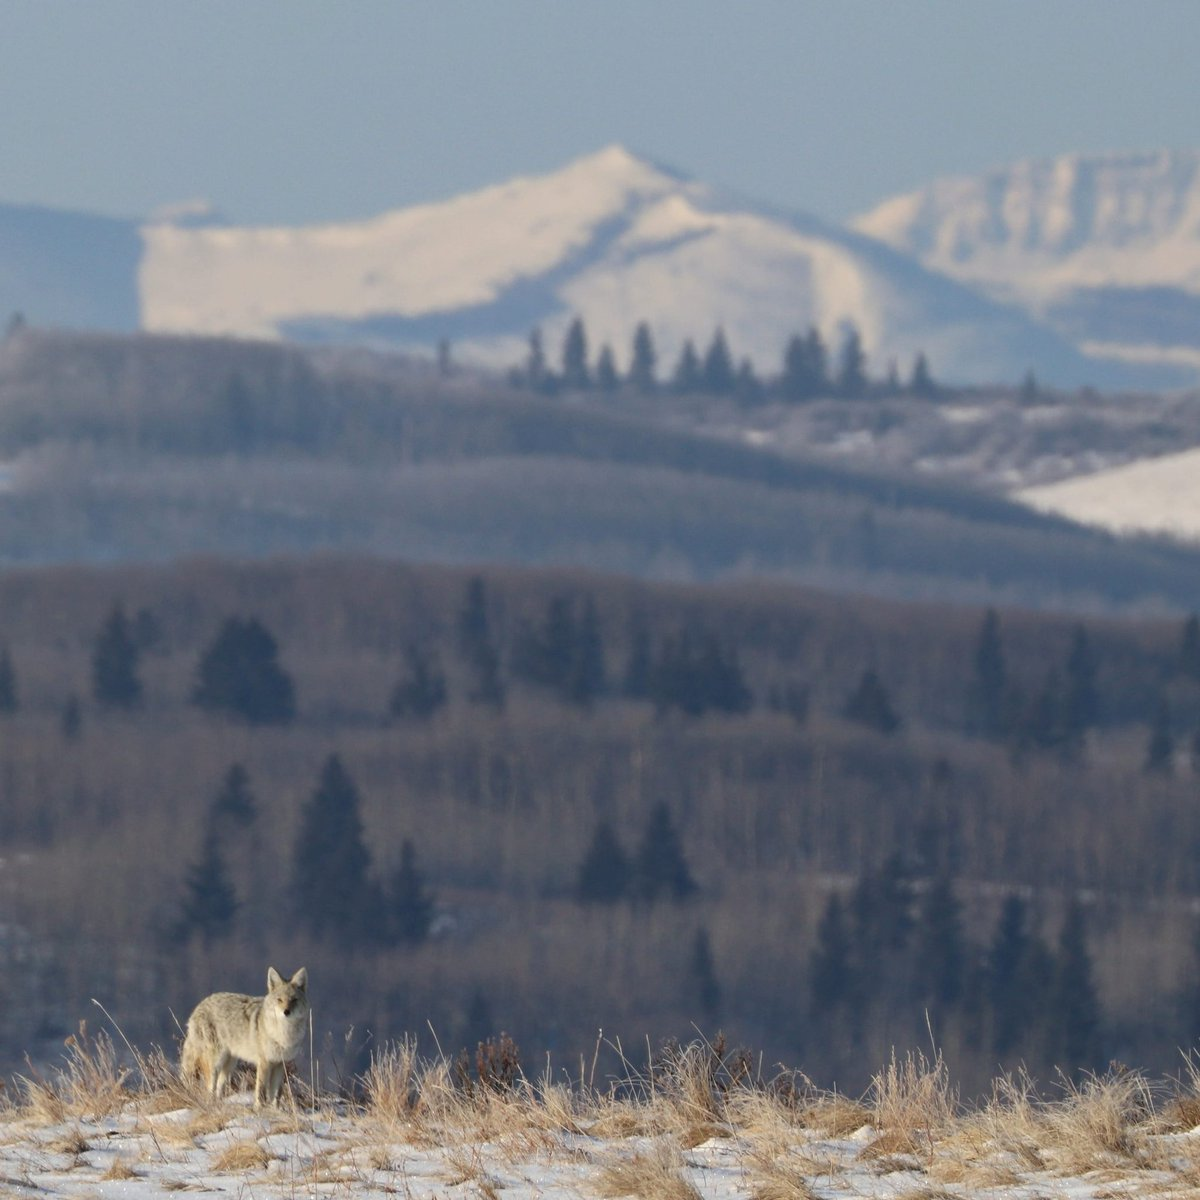 A #coyote with a view! ✨ #wildlife #songdog